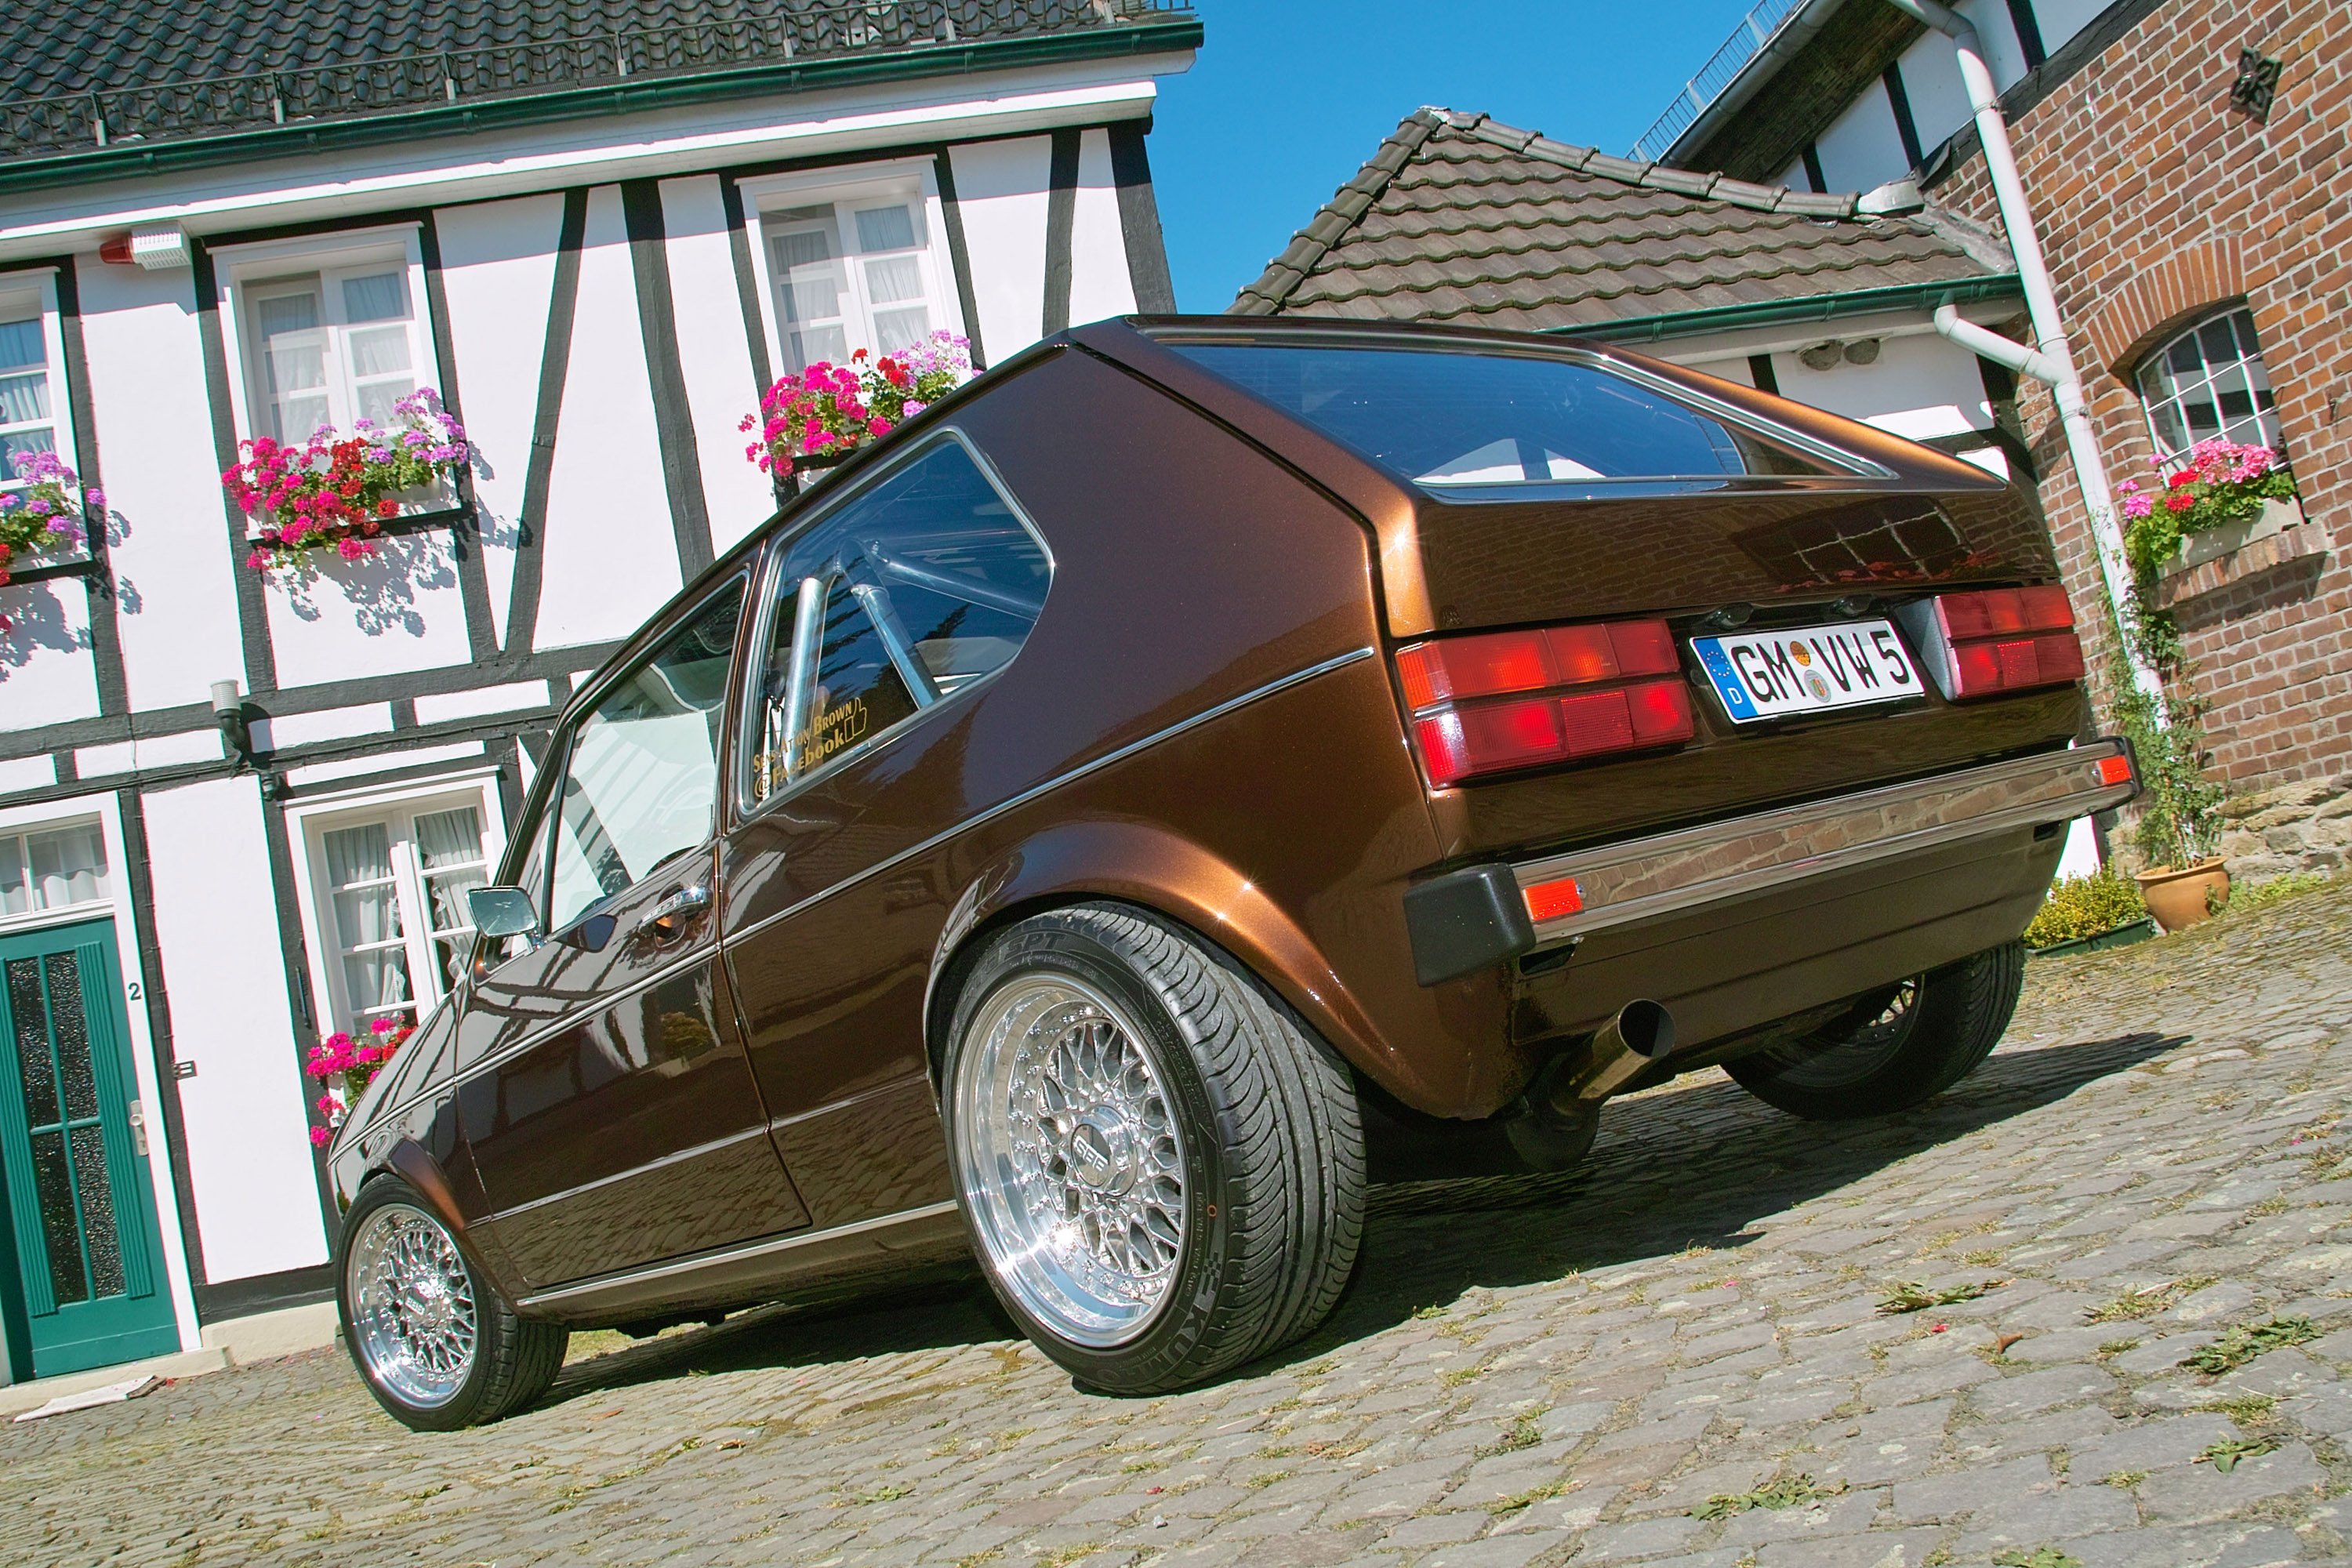 1983 Volkswagen Golf I Chocolate Brown Picture 73644